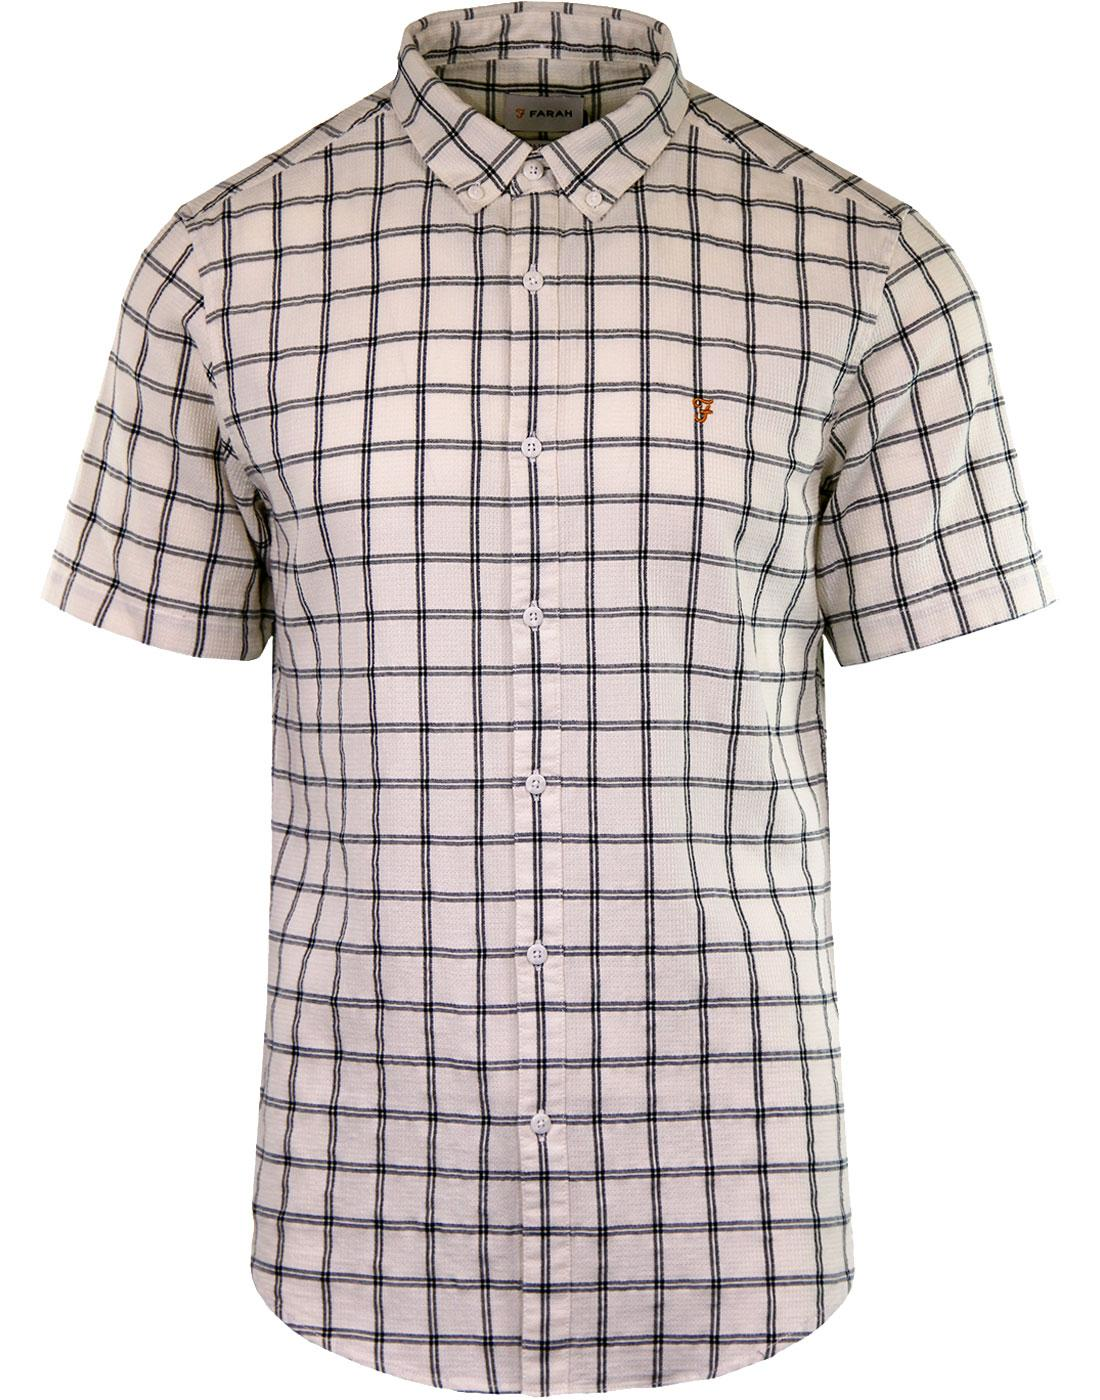 Johnson FARAH 60s Textured Windowpane Check Shirt